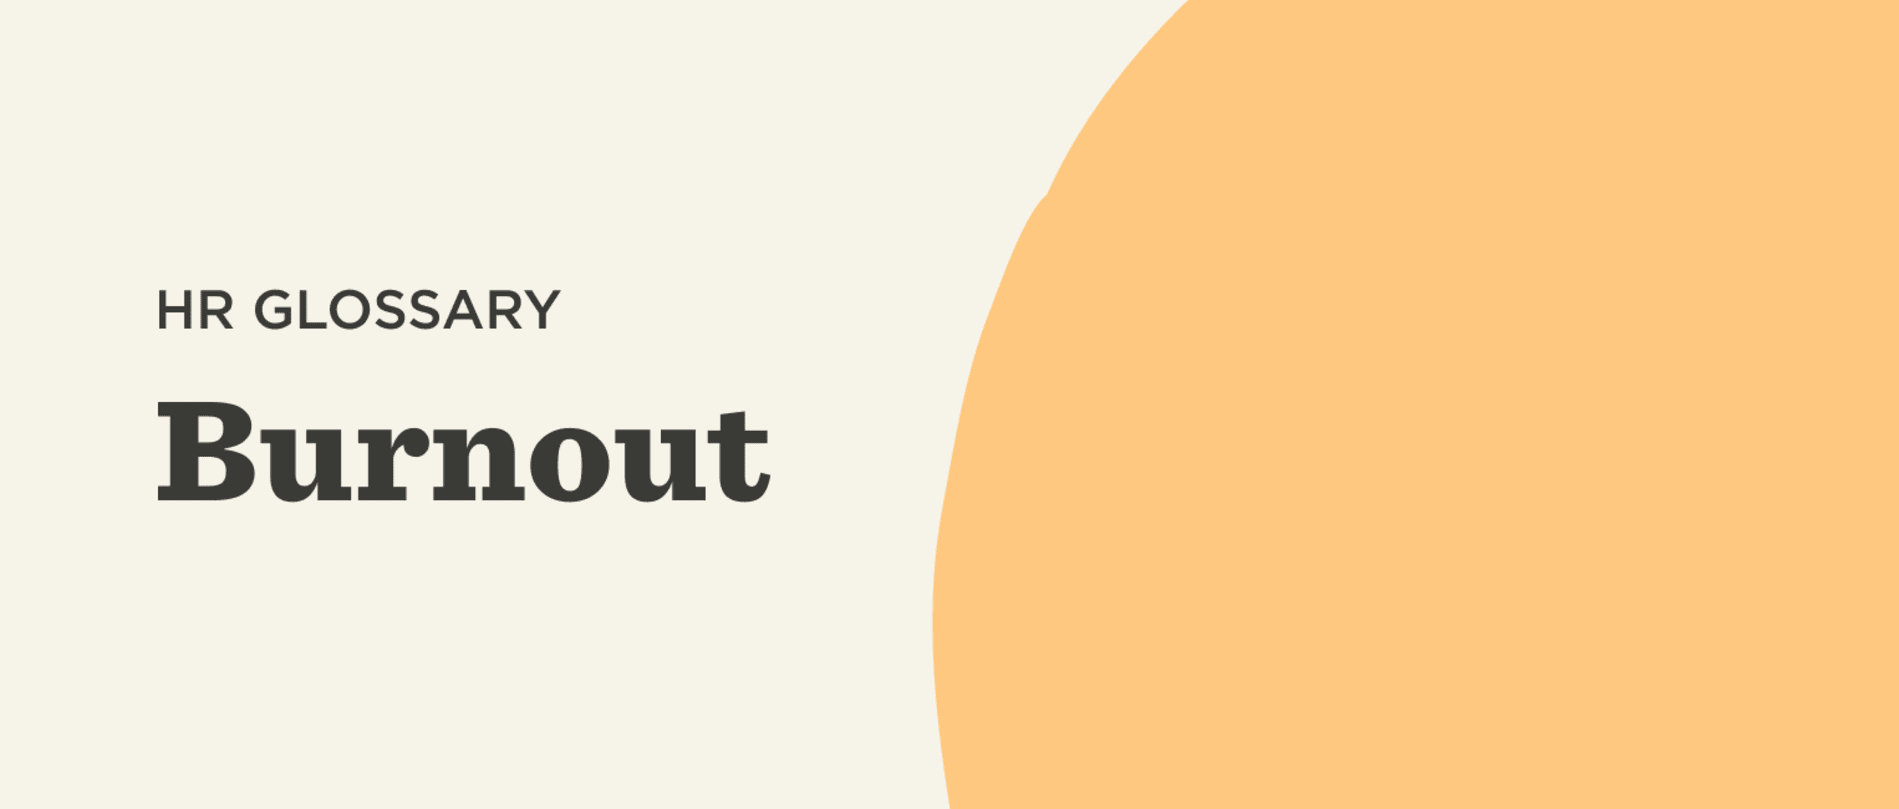 Burnout-Glossary-banner